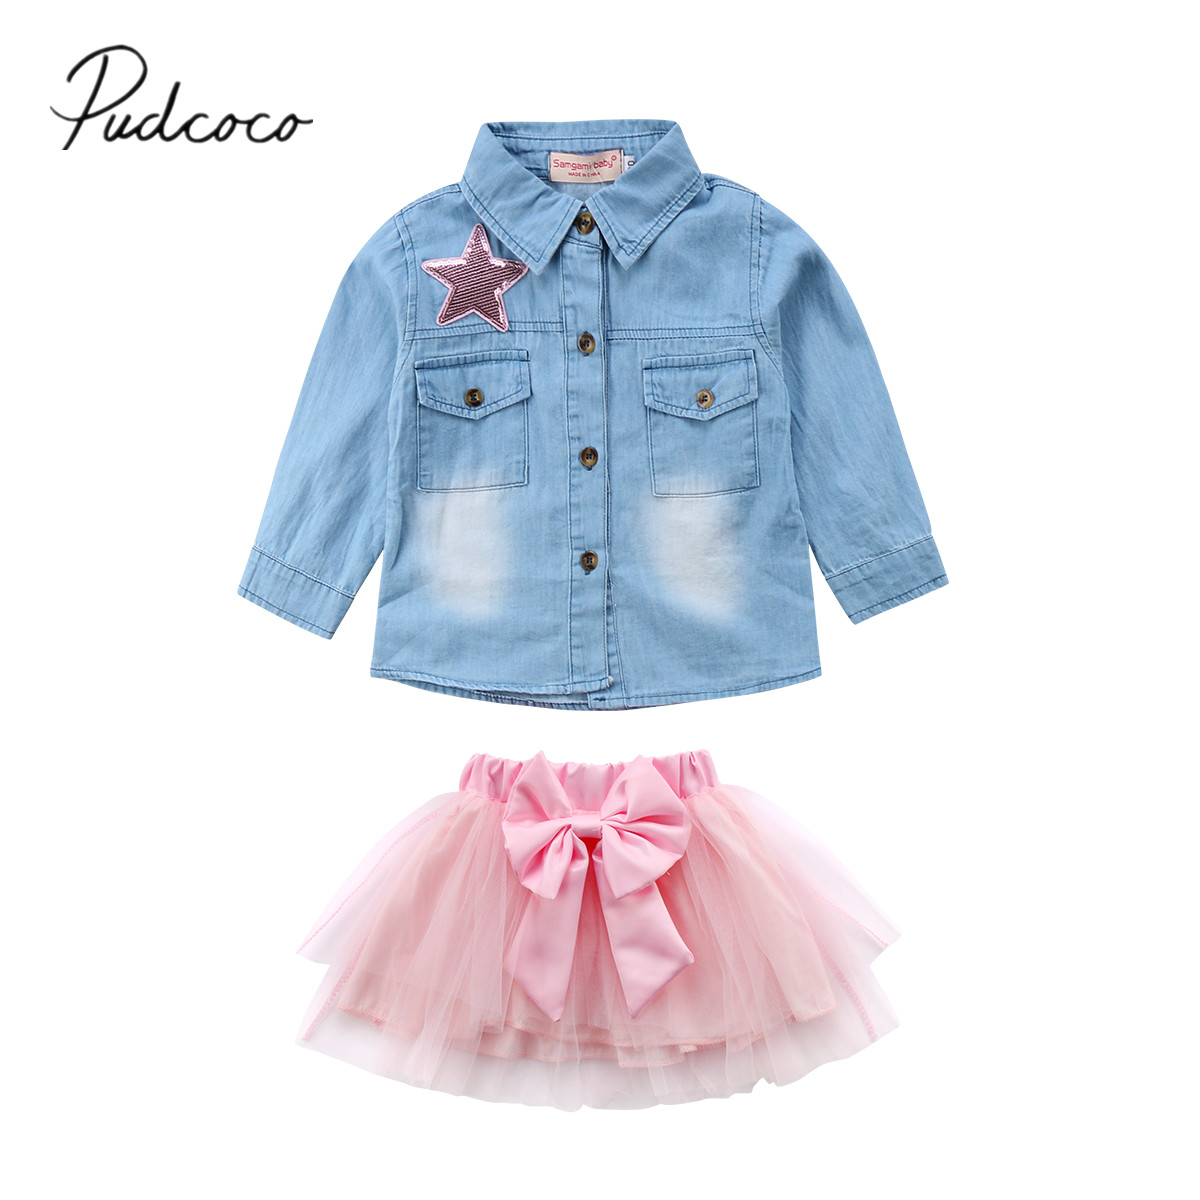 2018 Brand New Toddler Infant Child Kids Baby Girl Outfit Clothes Jeans Denim Shirt+ Bow Tutu Tulle Skirt 2Pcs Sets Clothes 1-6T new born baby girl clothes leopard 3pcs suit rompers tutu skirt dress headband hat fashion kids infant clothing sets